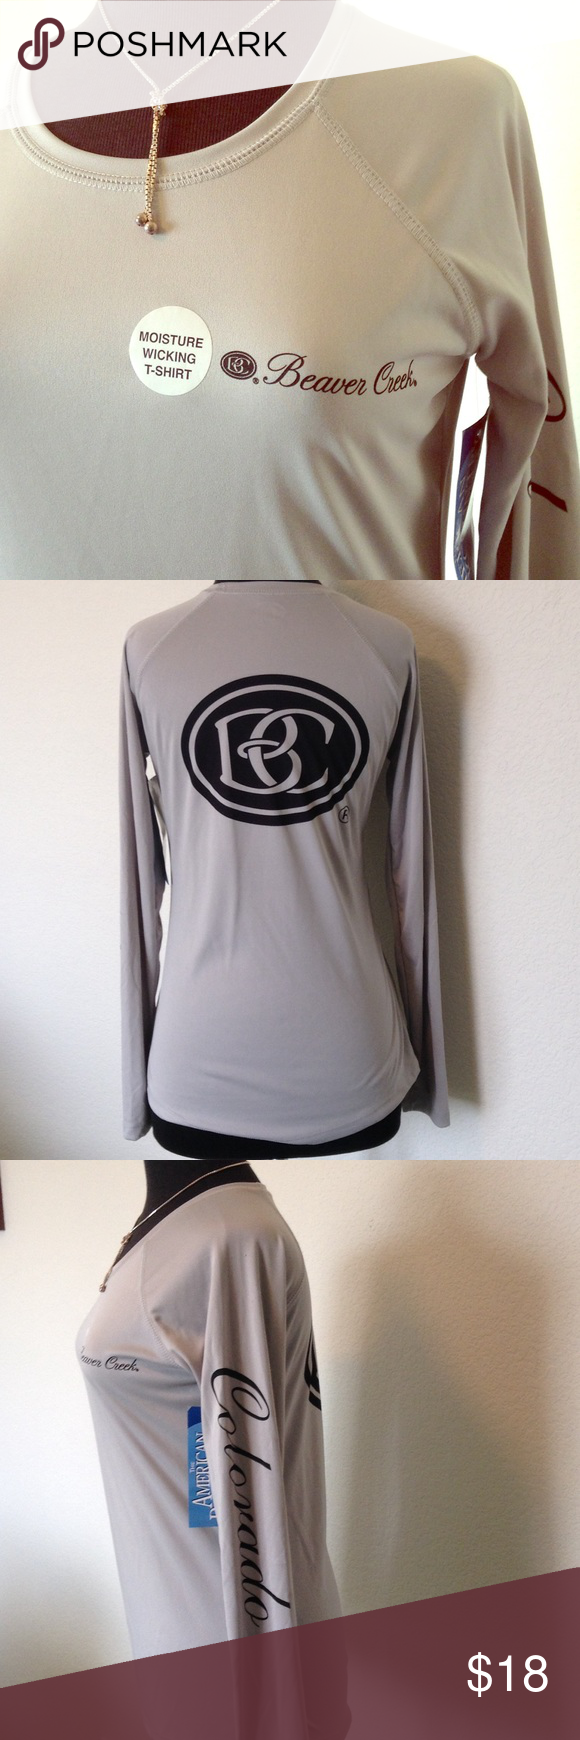 🆕NWT Moisture-wicking T-shirt in light grey This is a brand new with tags light grey AMERICAN BACKCOUNTRY moisture-wicking T-shirt with BEAVER CREEK CO markings. Great for skiing or to wear under wool clothing. American Backcountry Tops Tees - Long Sleeve